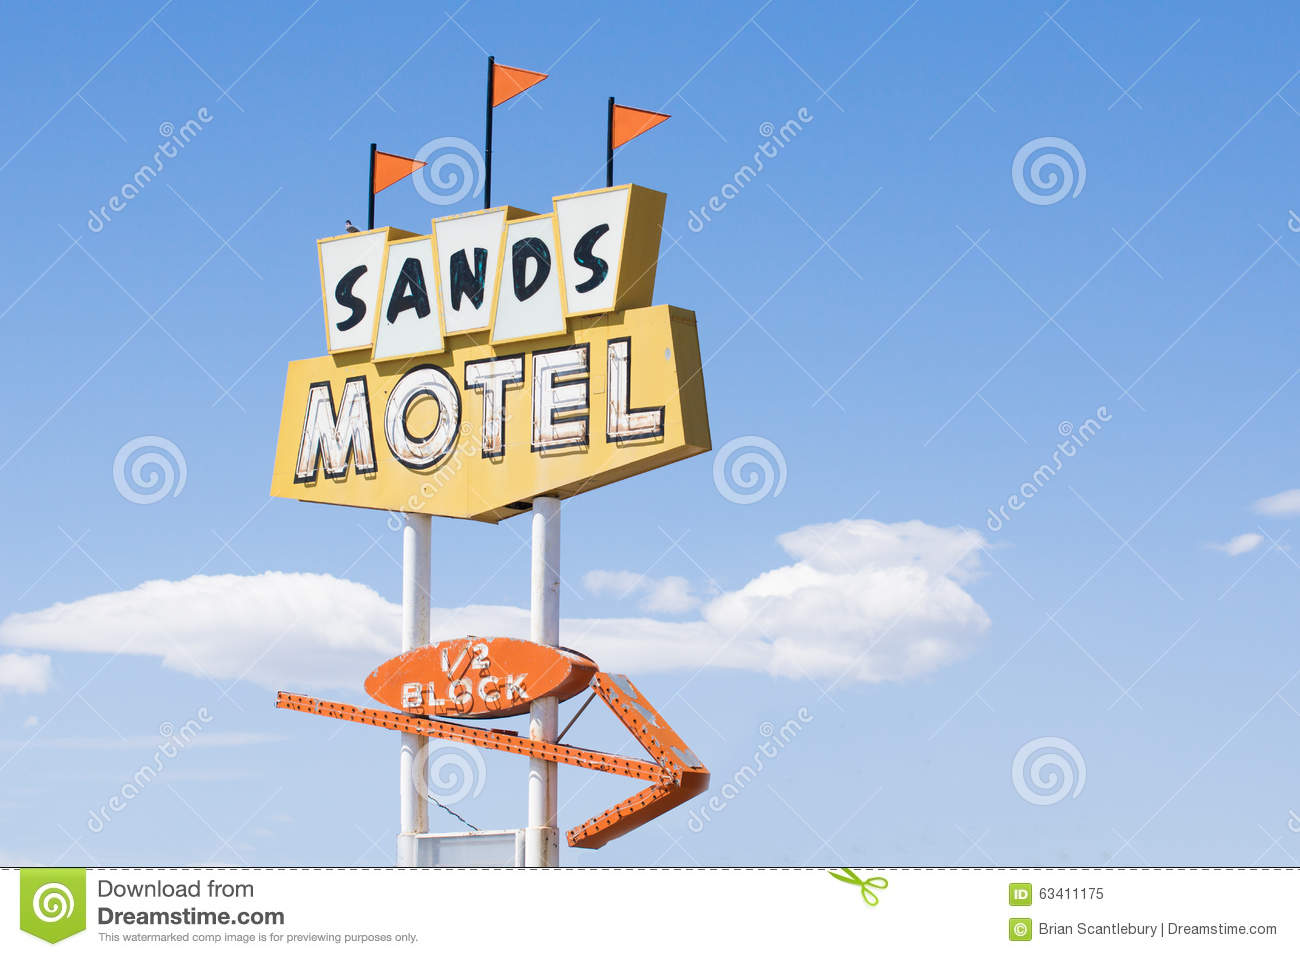 Sands Motel And Sign Historic Route 66 At Grants New Mexico, USA.